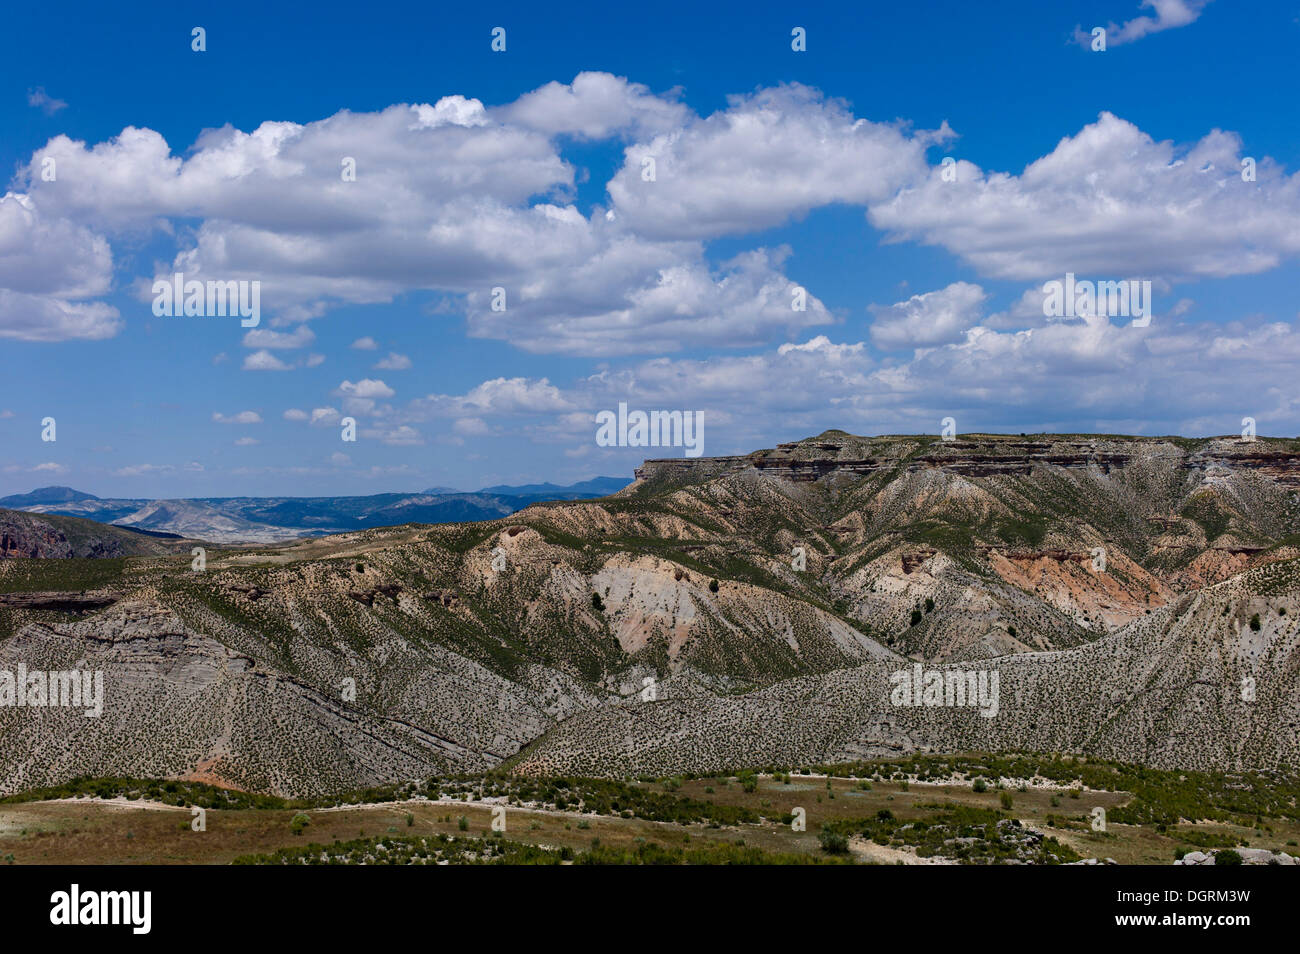 Ba os de alic n stock photos ba os de alic n stock images alamy - Banos de alicun ...